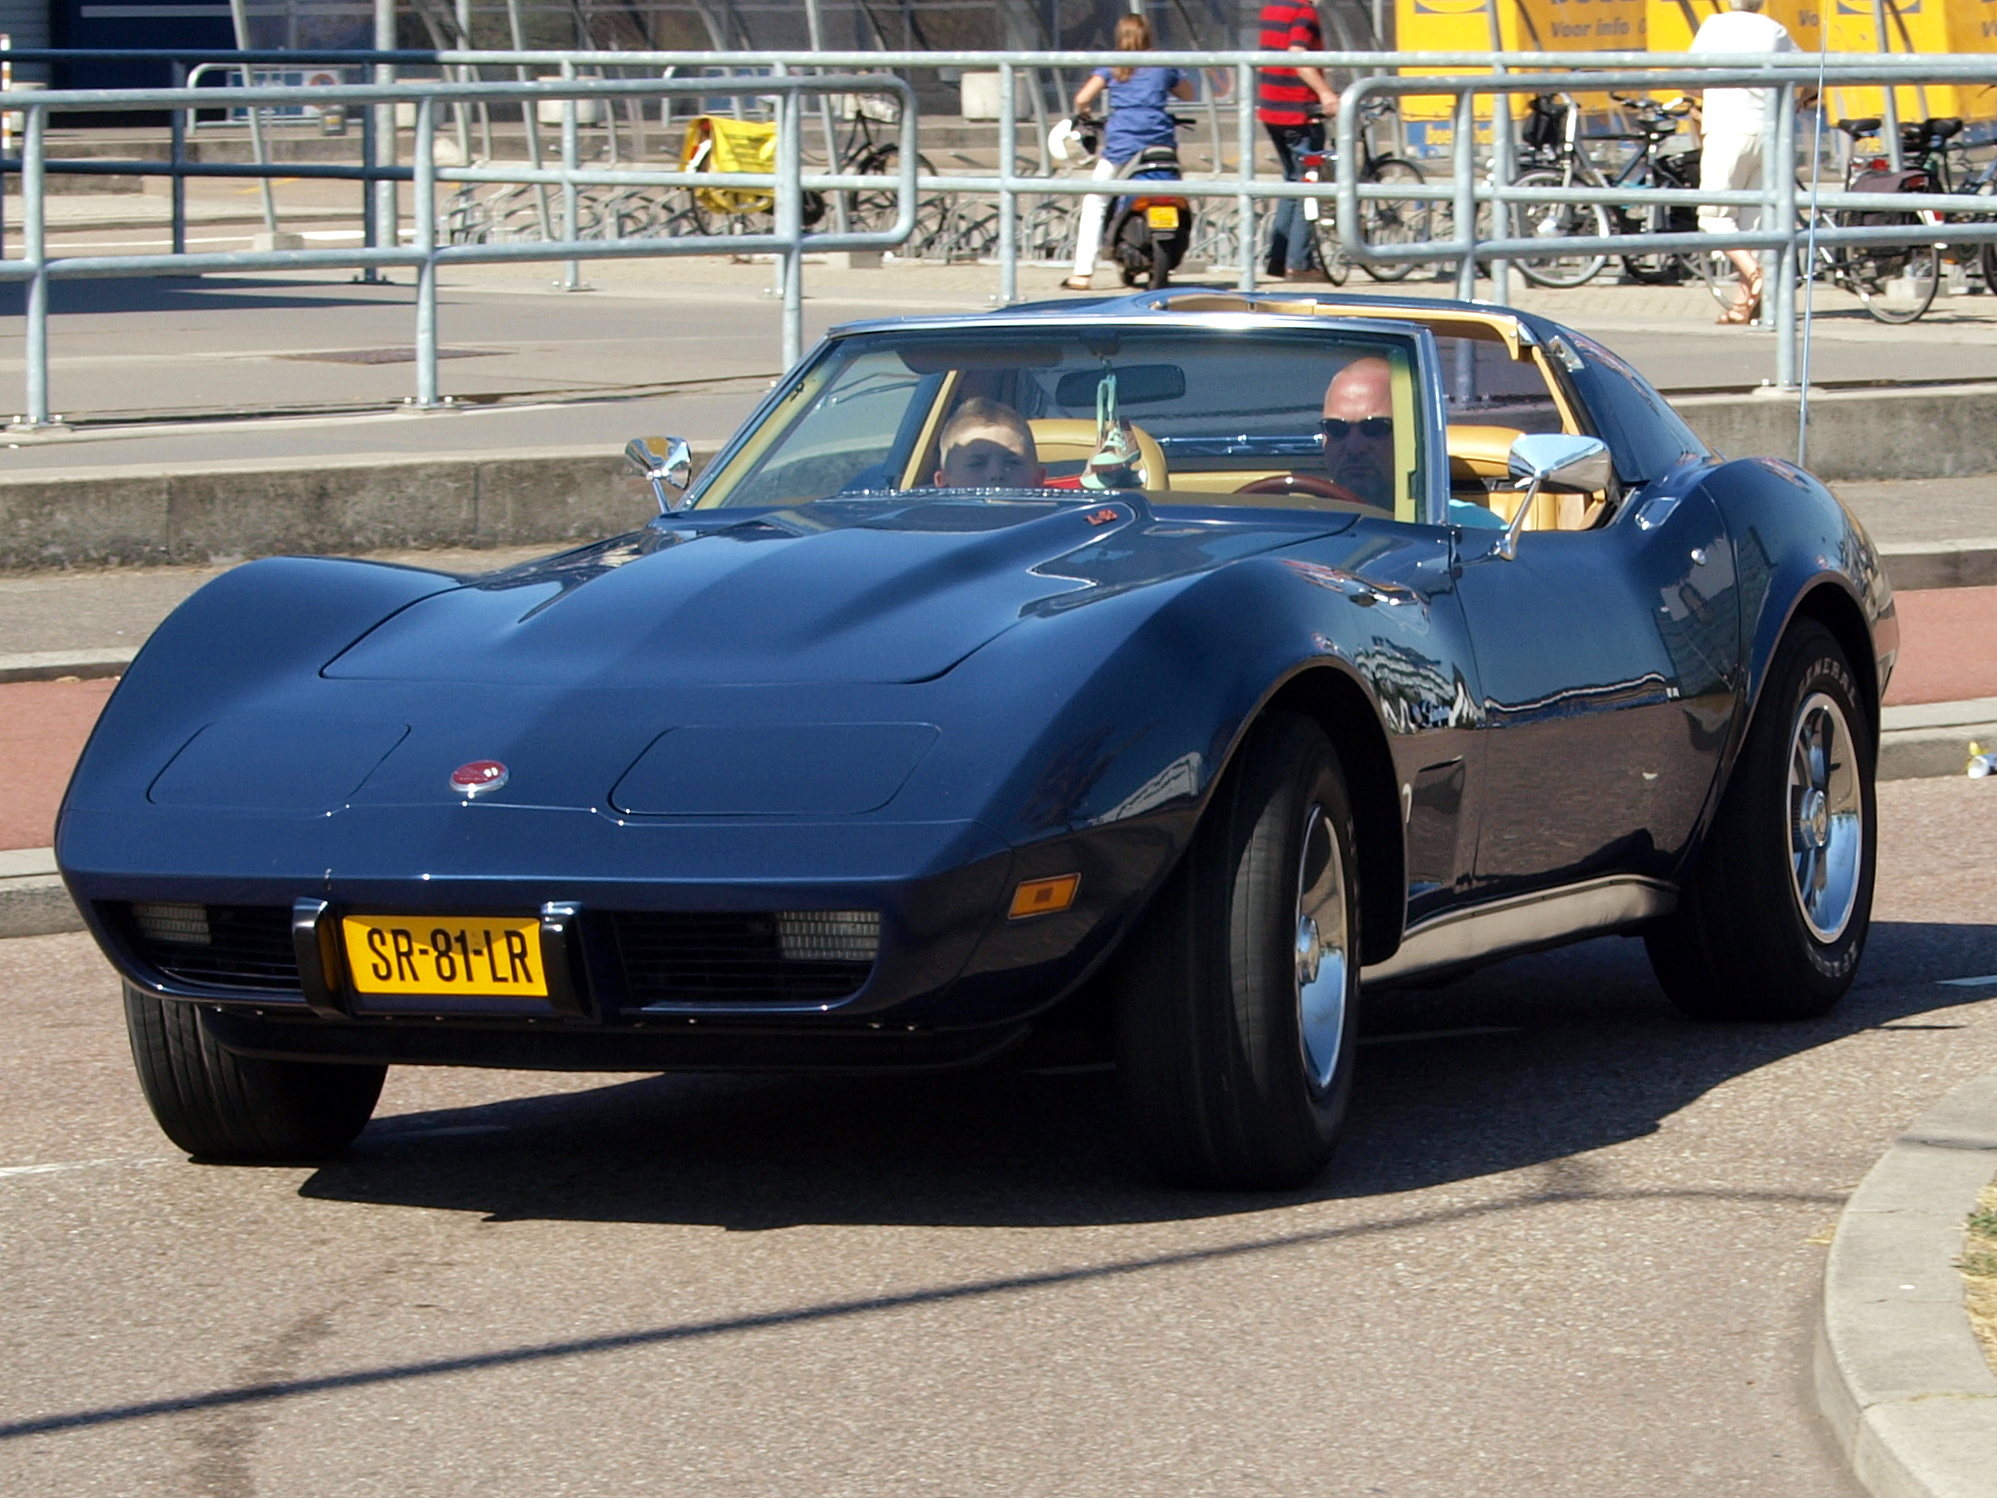 File Corvette Stingray Sr 81 Lr Pic1 Jpg Wikimedia Commons